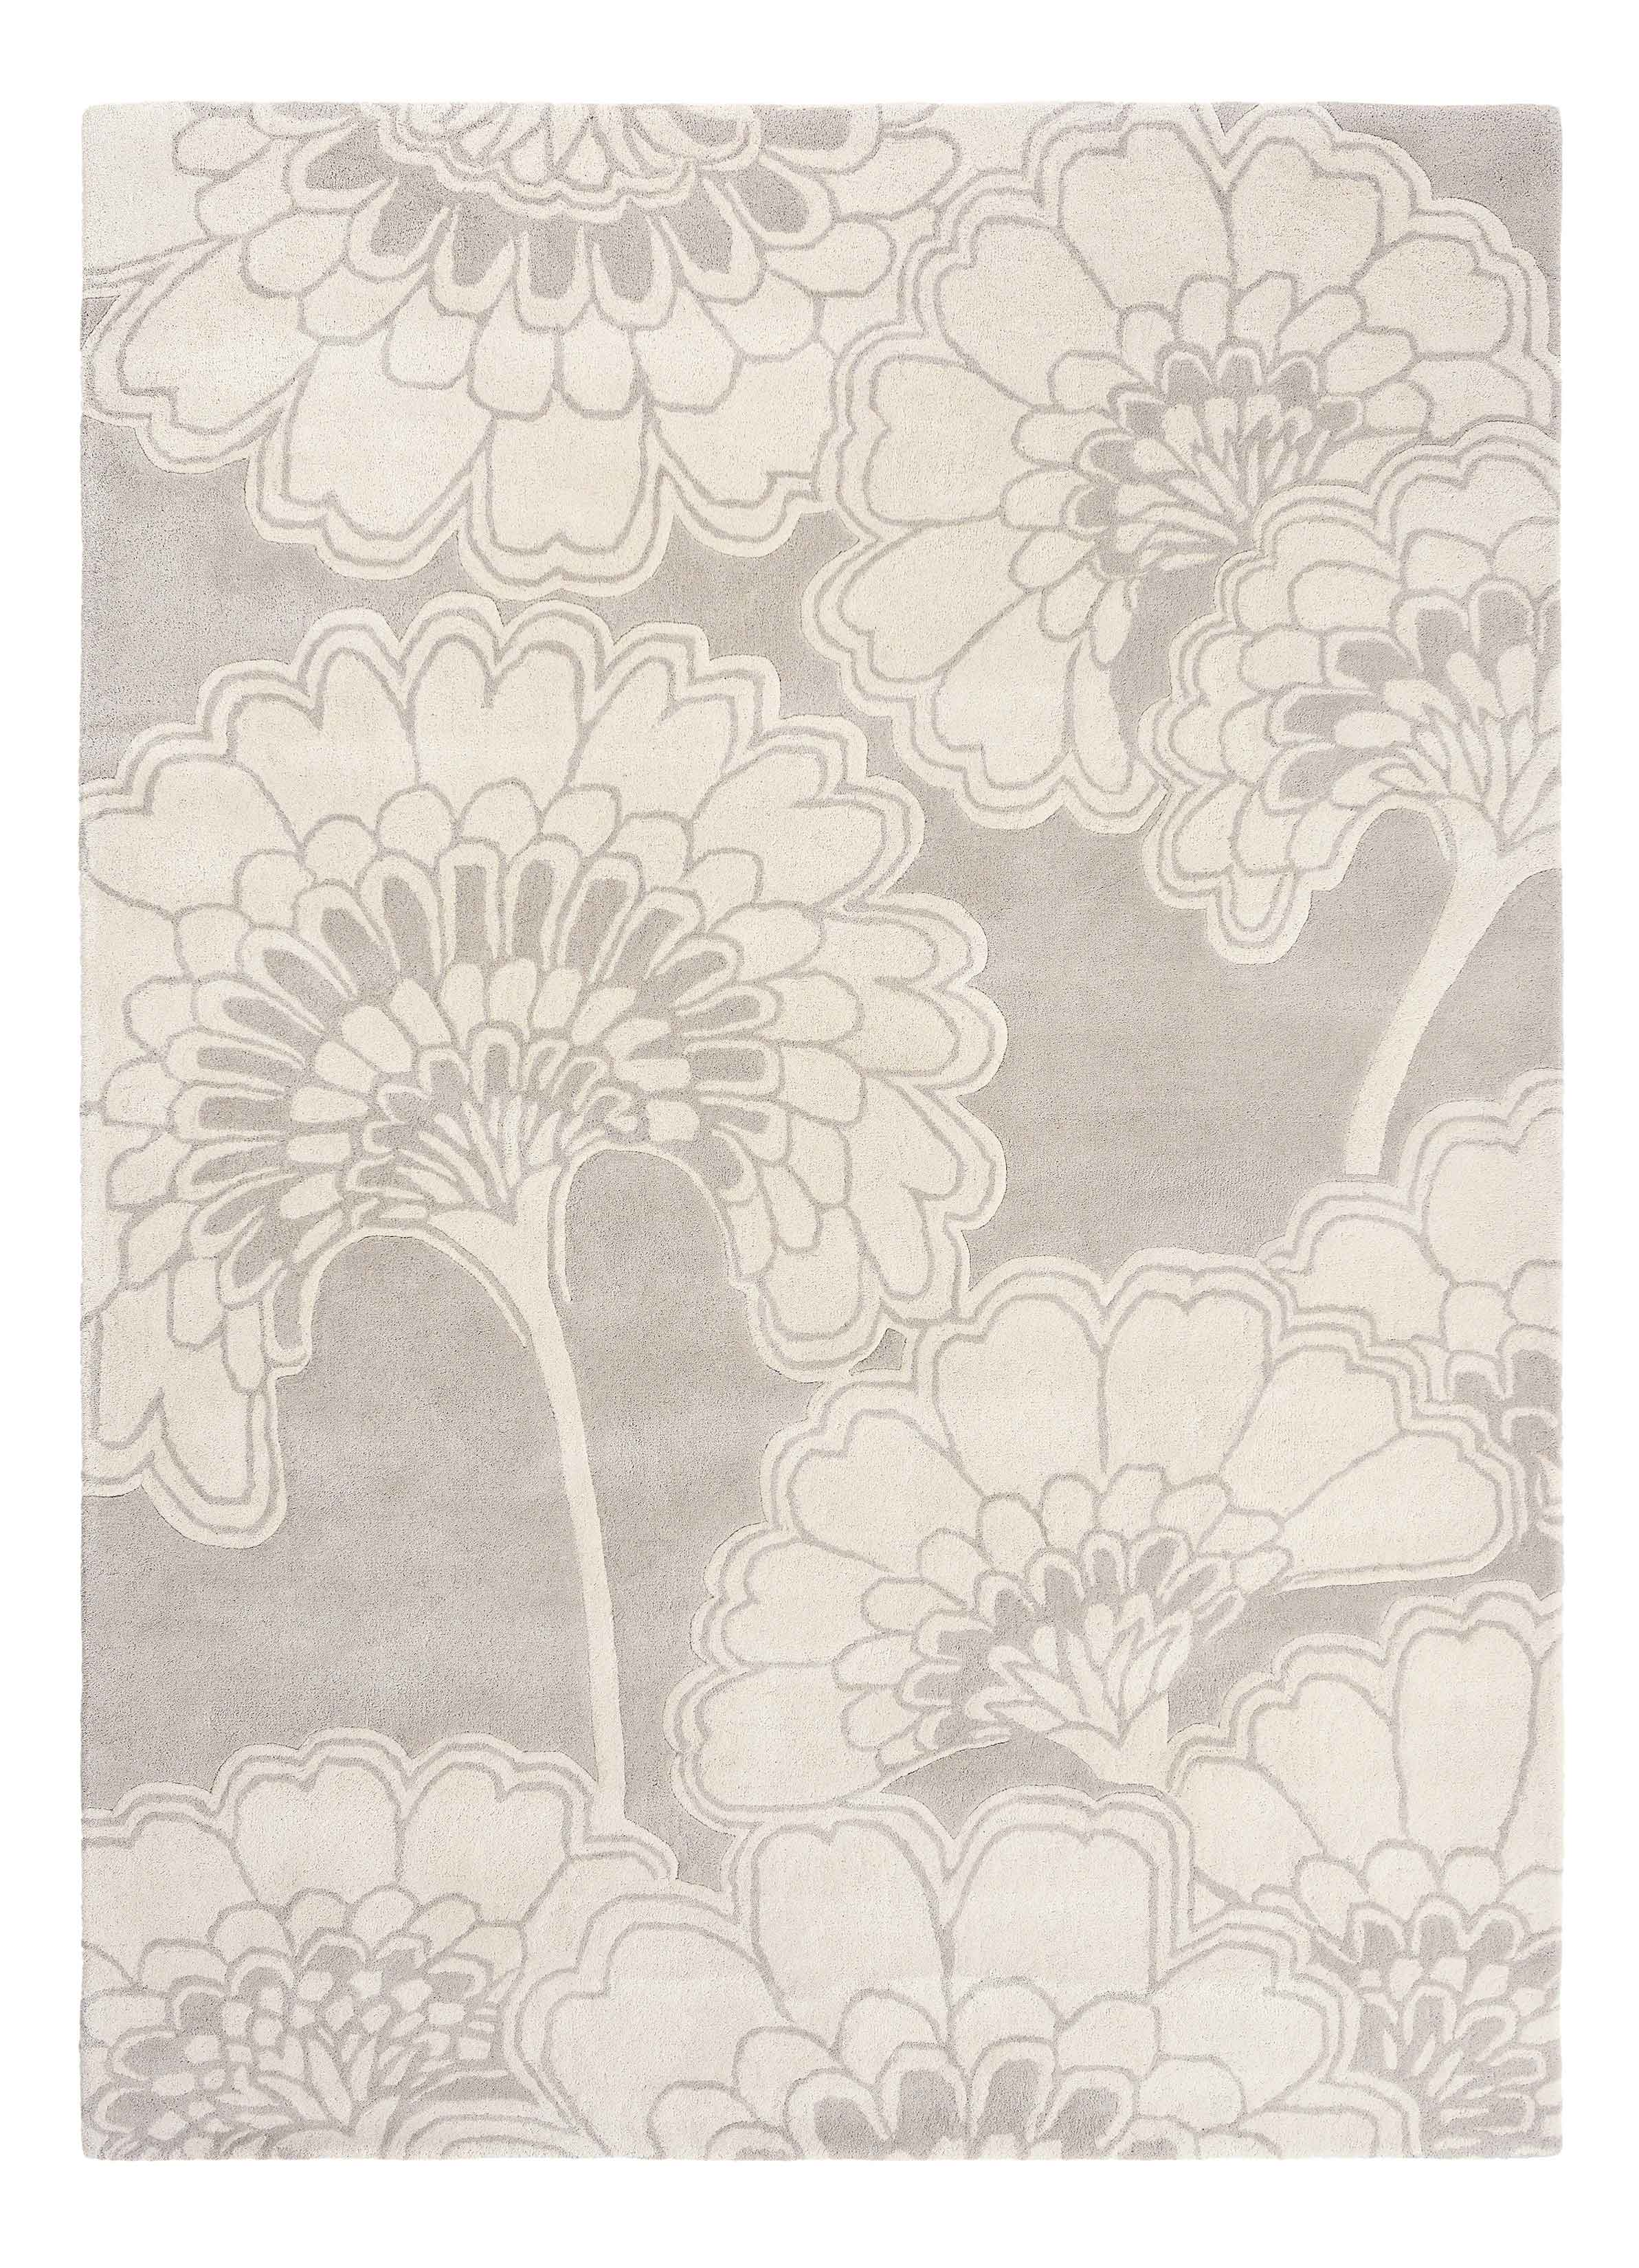 FB-Japanese-Floral-Oyster-039701